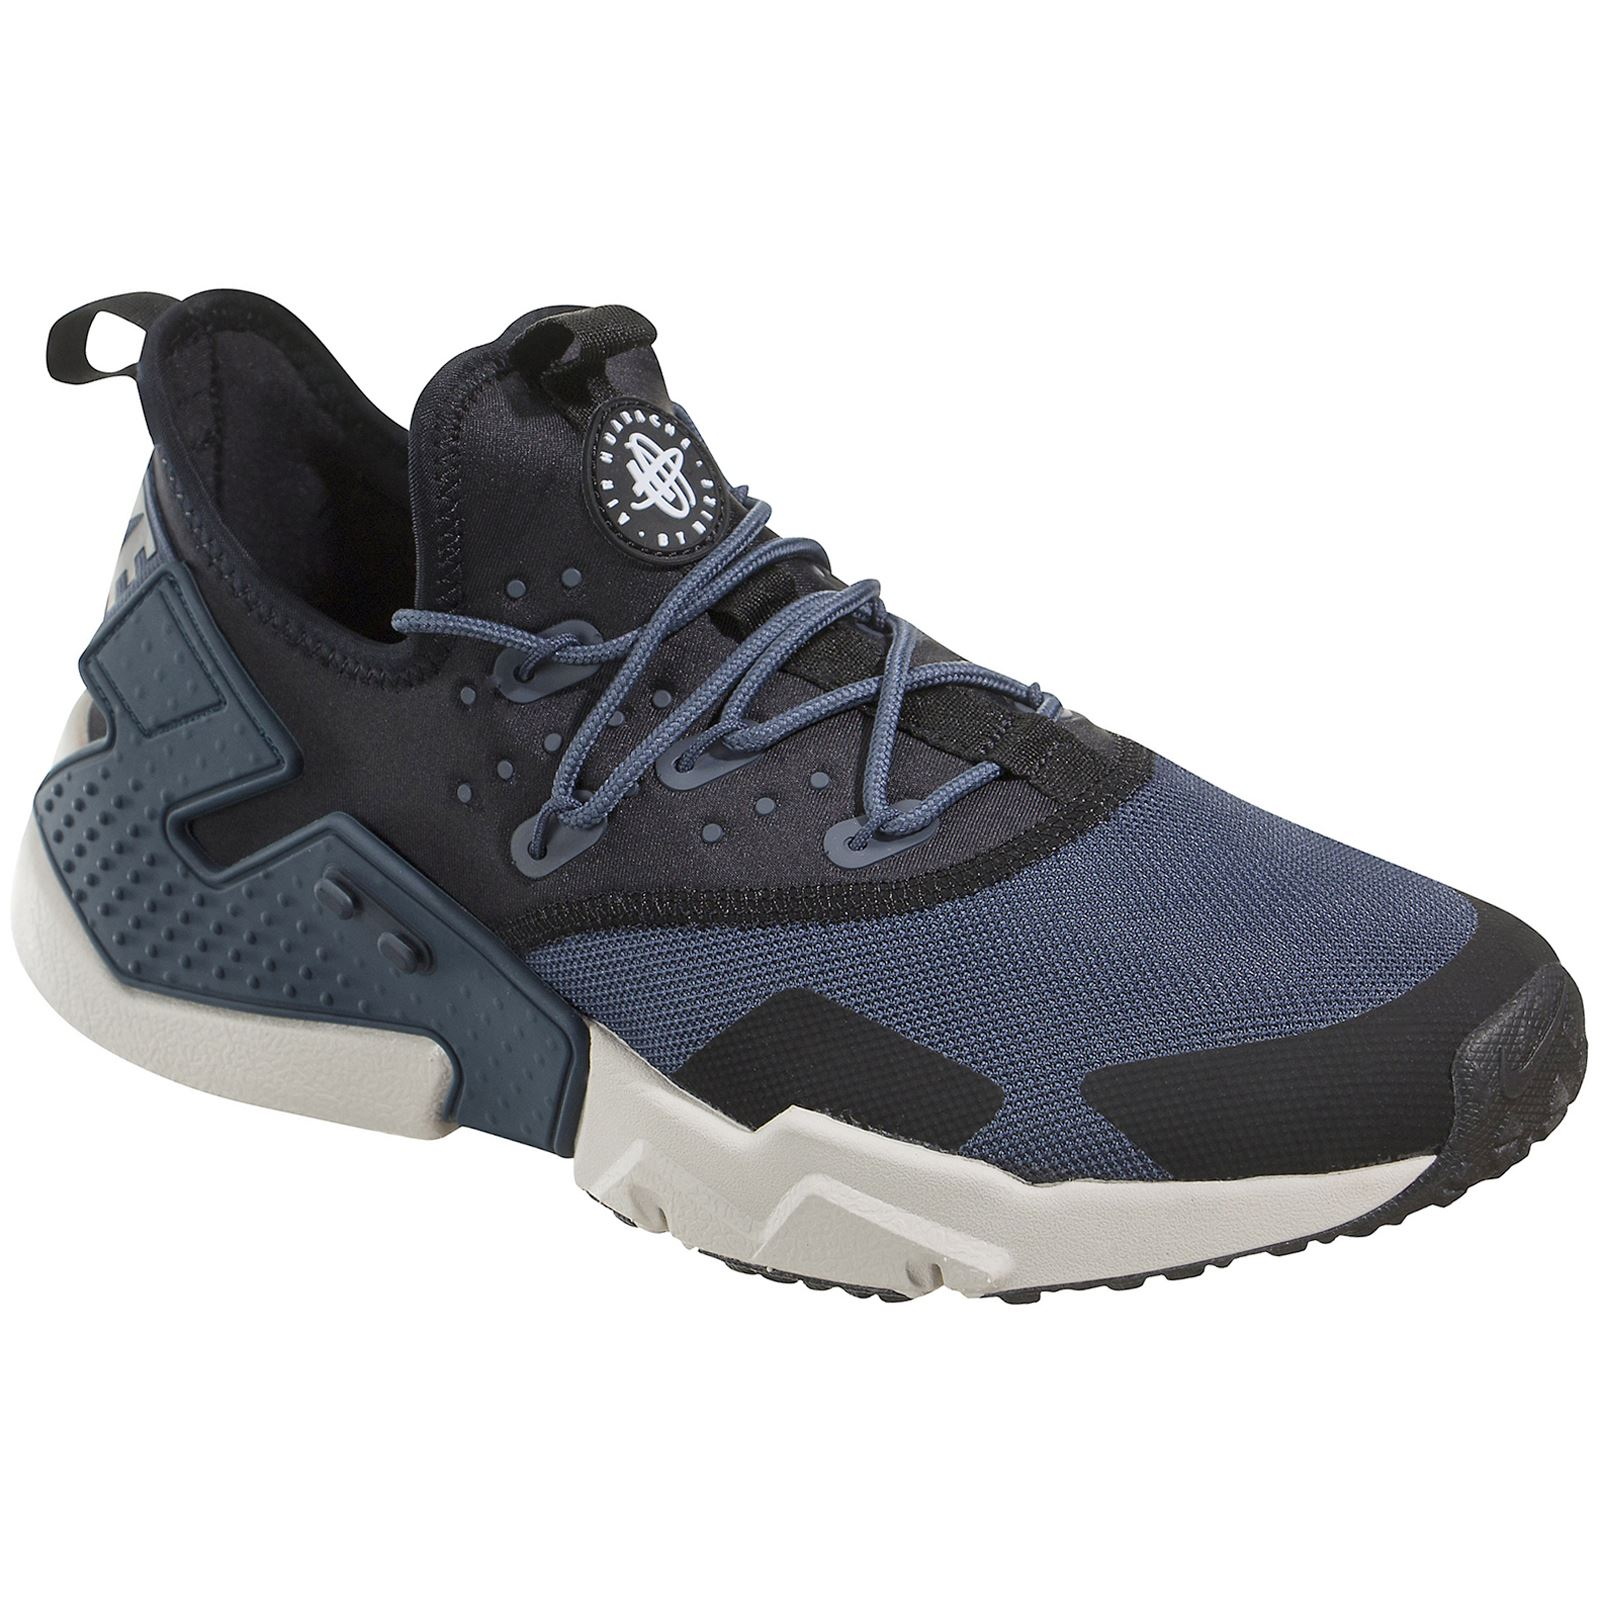 2877698e480 Details about Nike Air Huarache Drift Thunder Blue Black Mens Mesh Low-top  Cushioning Trainers